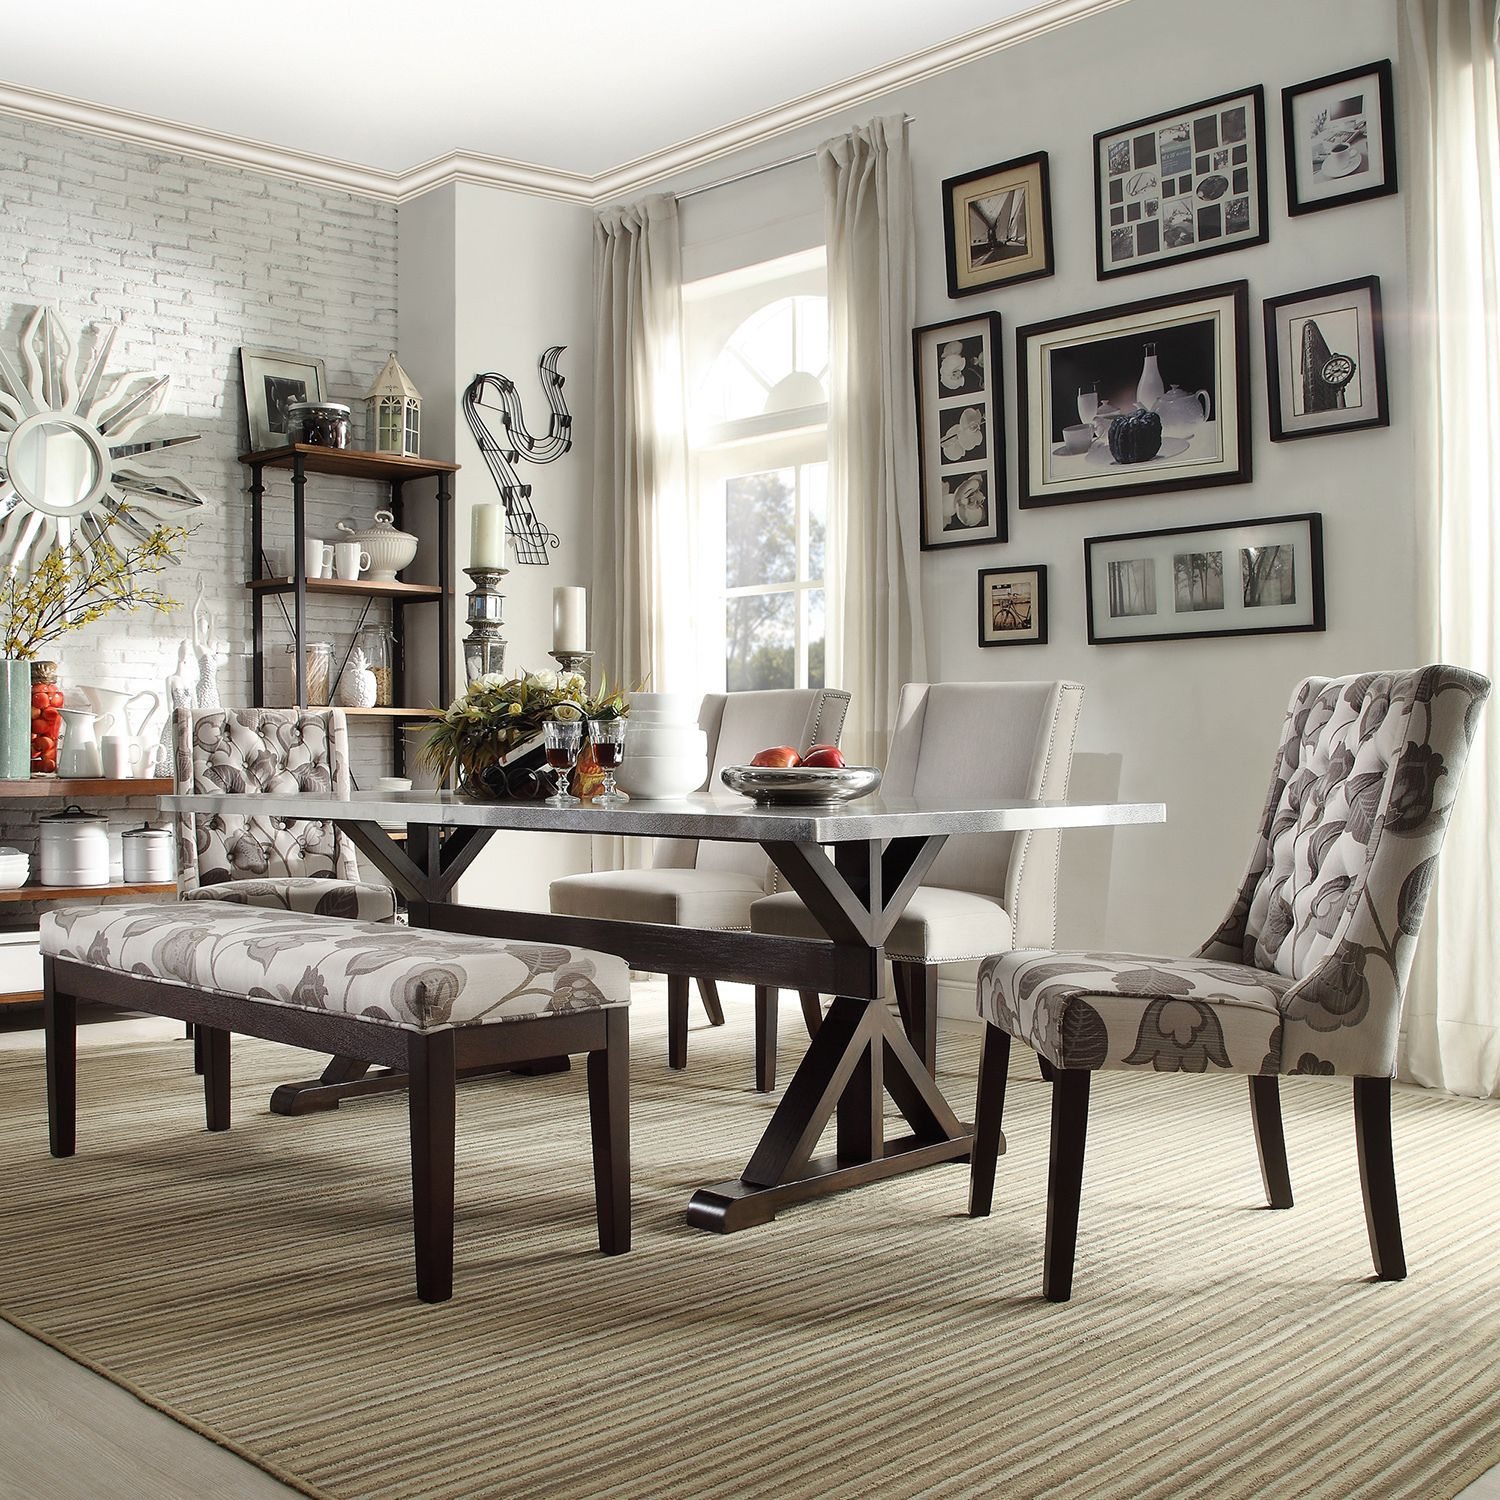 Trumbull Stainless Steel Dining Table by iNSPIRE Q Artisan by iNSPIRE Q